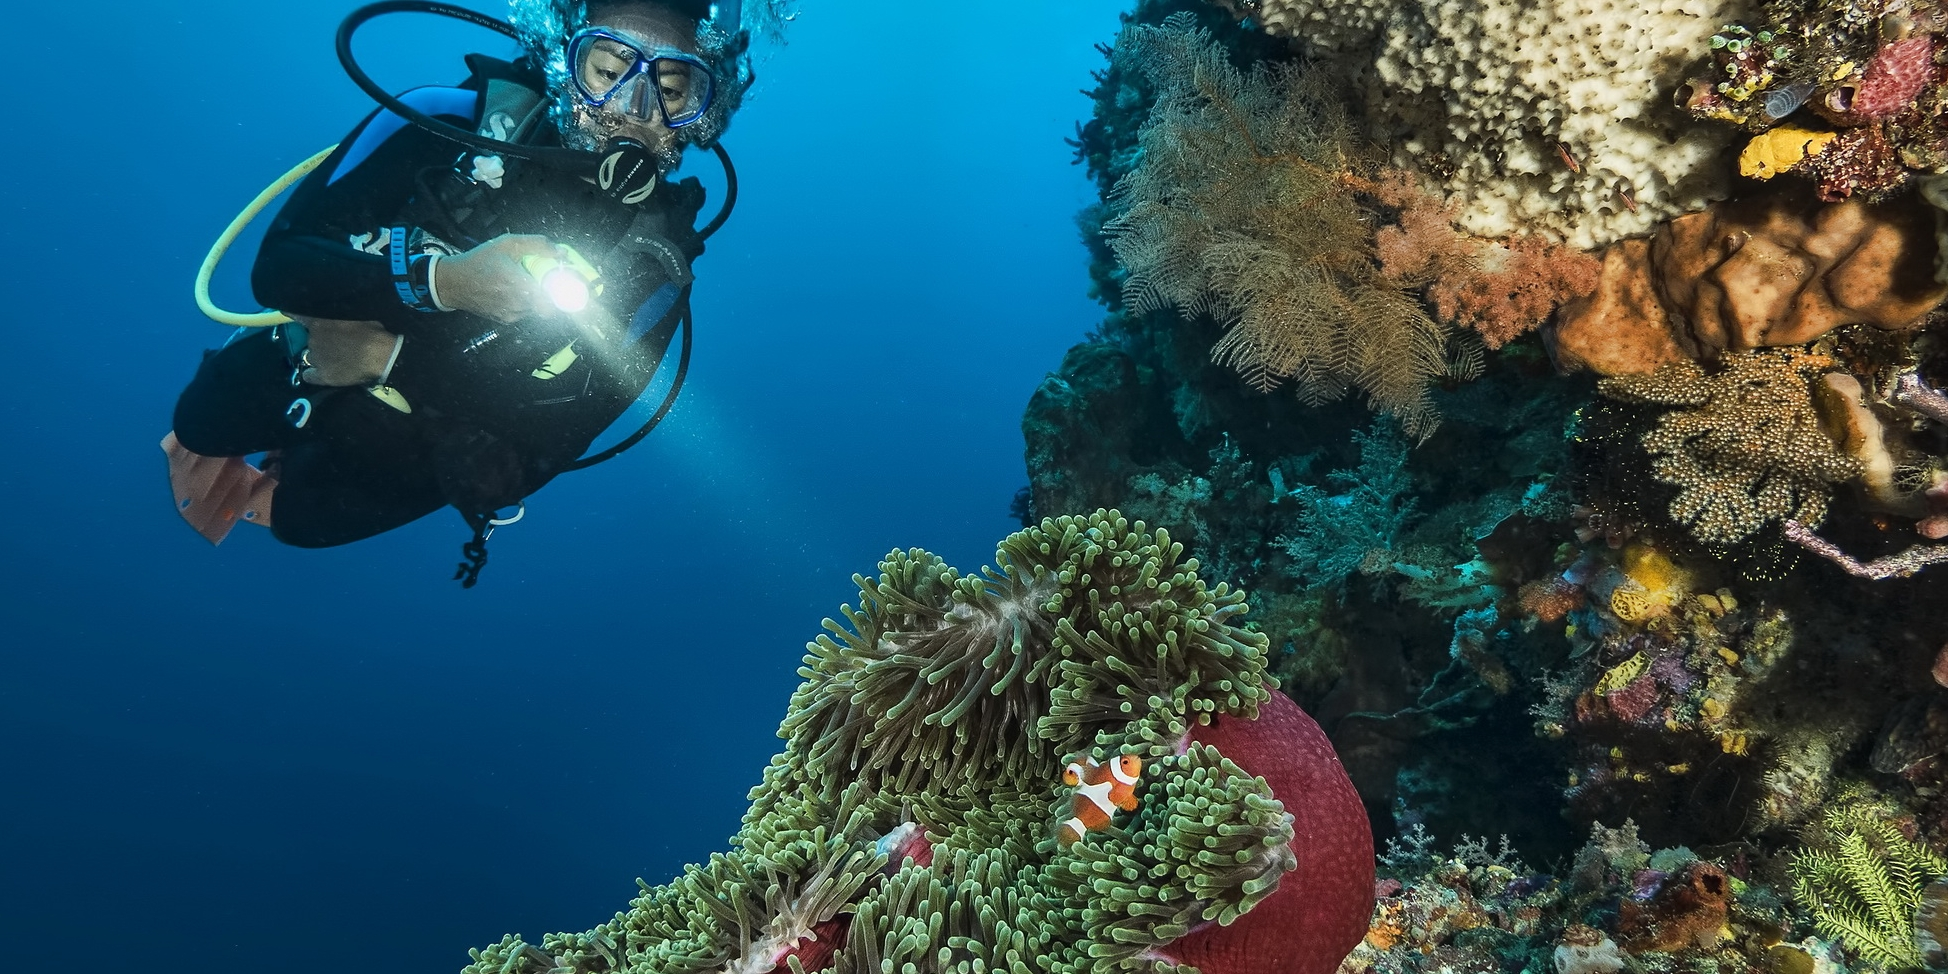 Atauro Island is a must for those with a frontier spirit & a love of dramatic, vivid wall dives